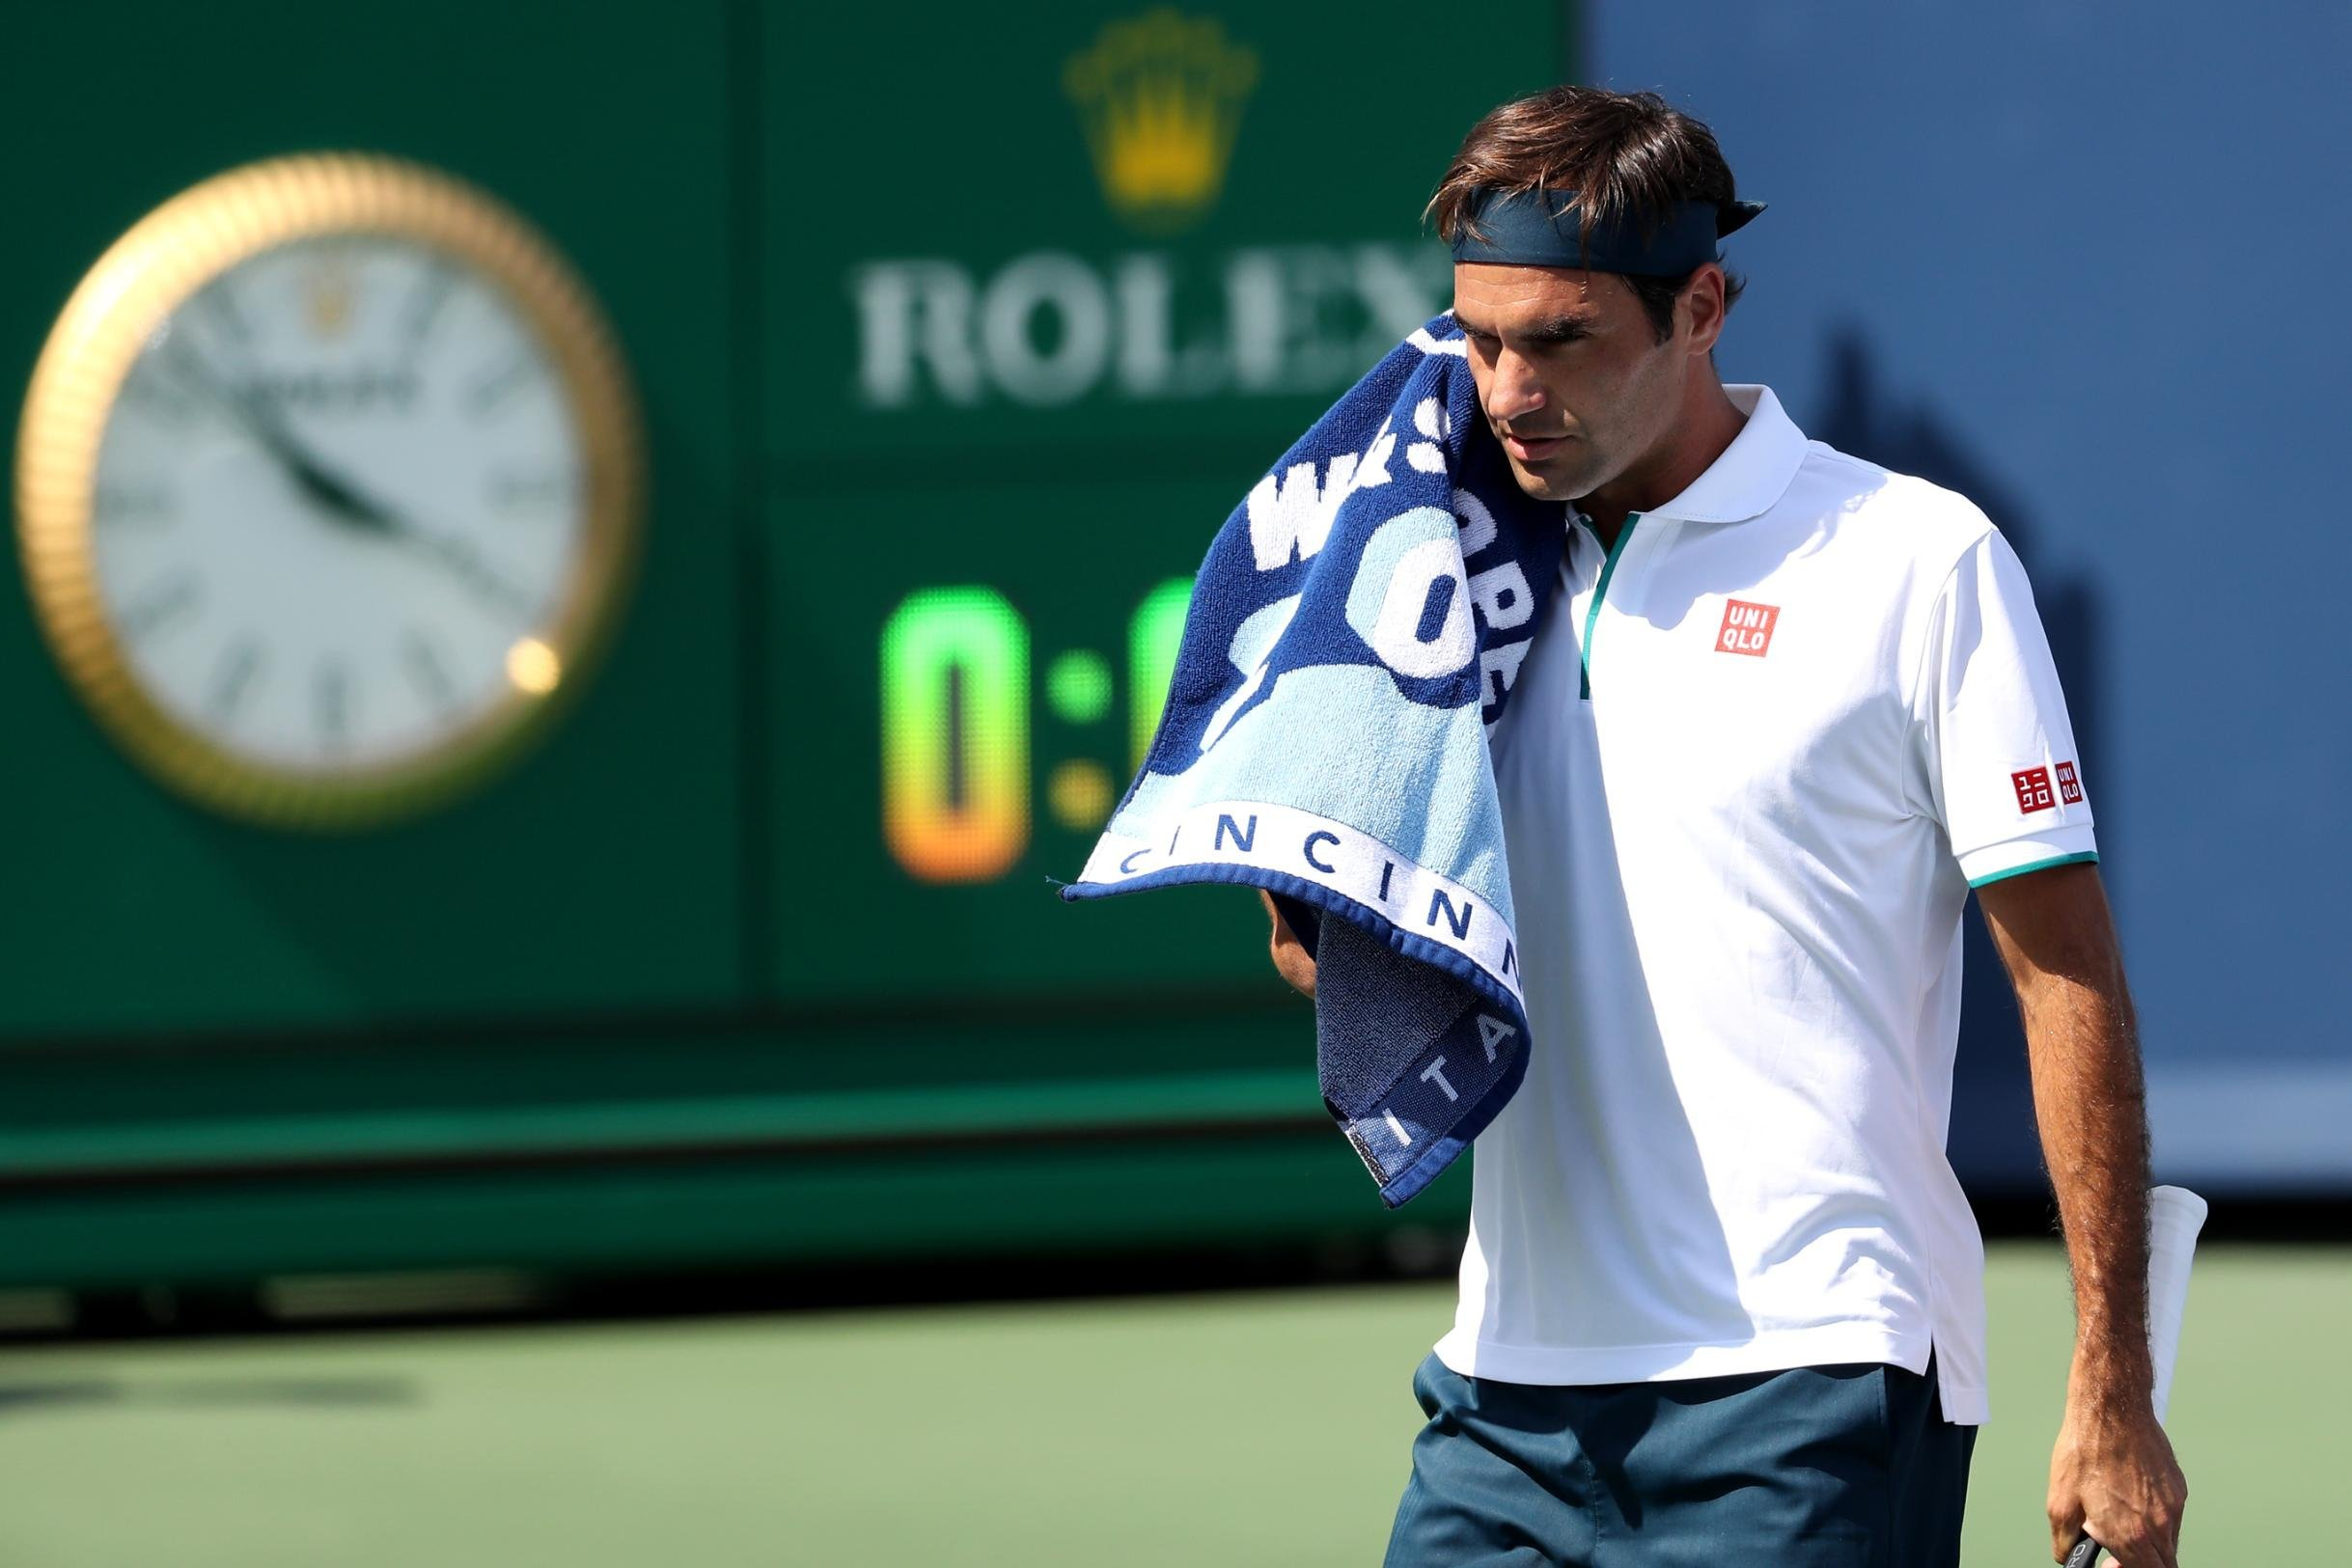 Roger Federer suffers his fastest defeat in 16 years at the Cincinnati Masters